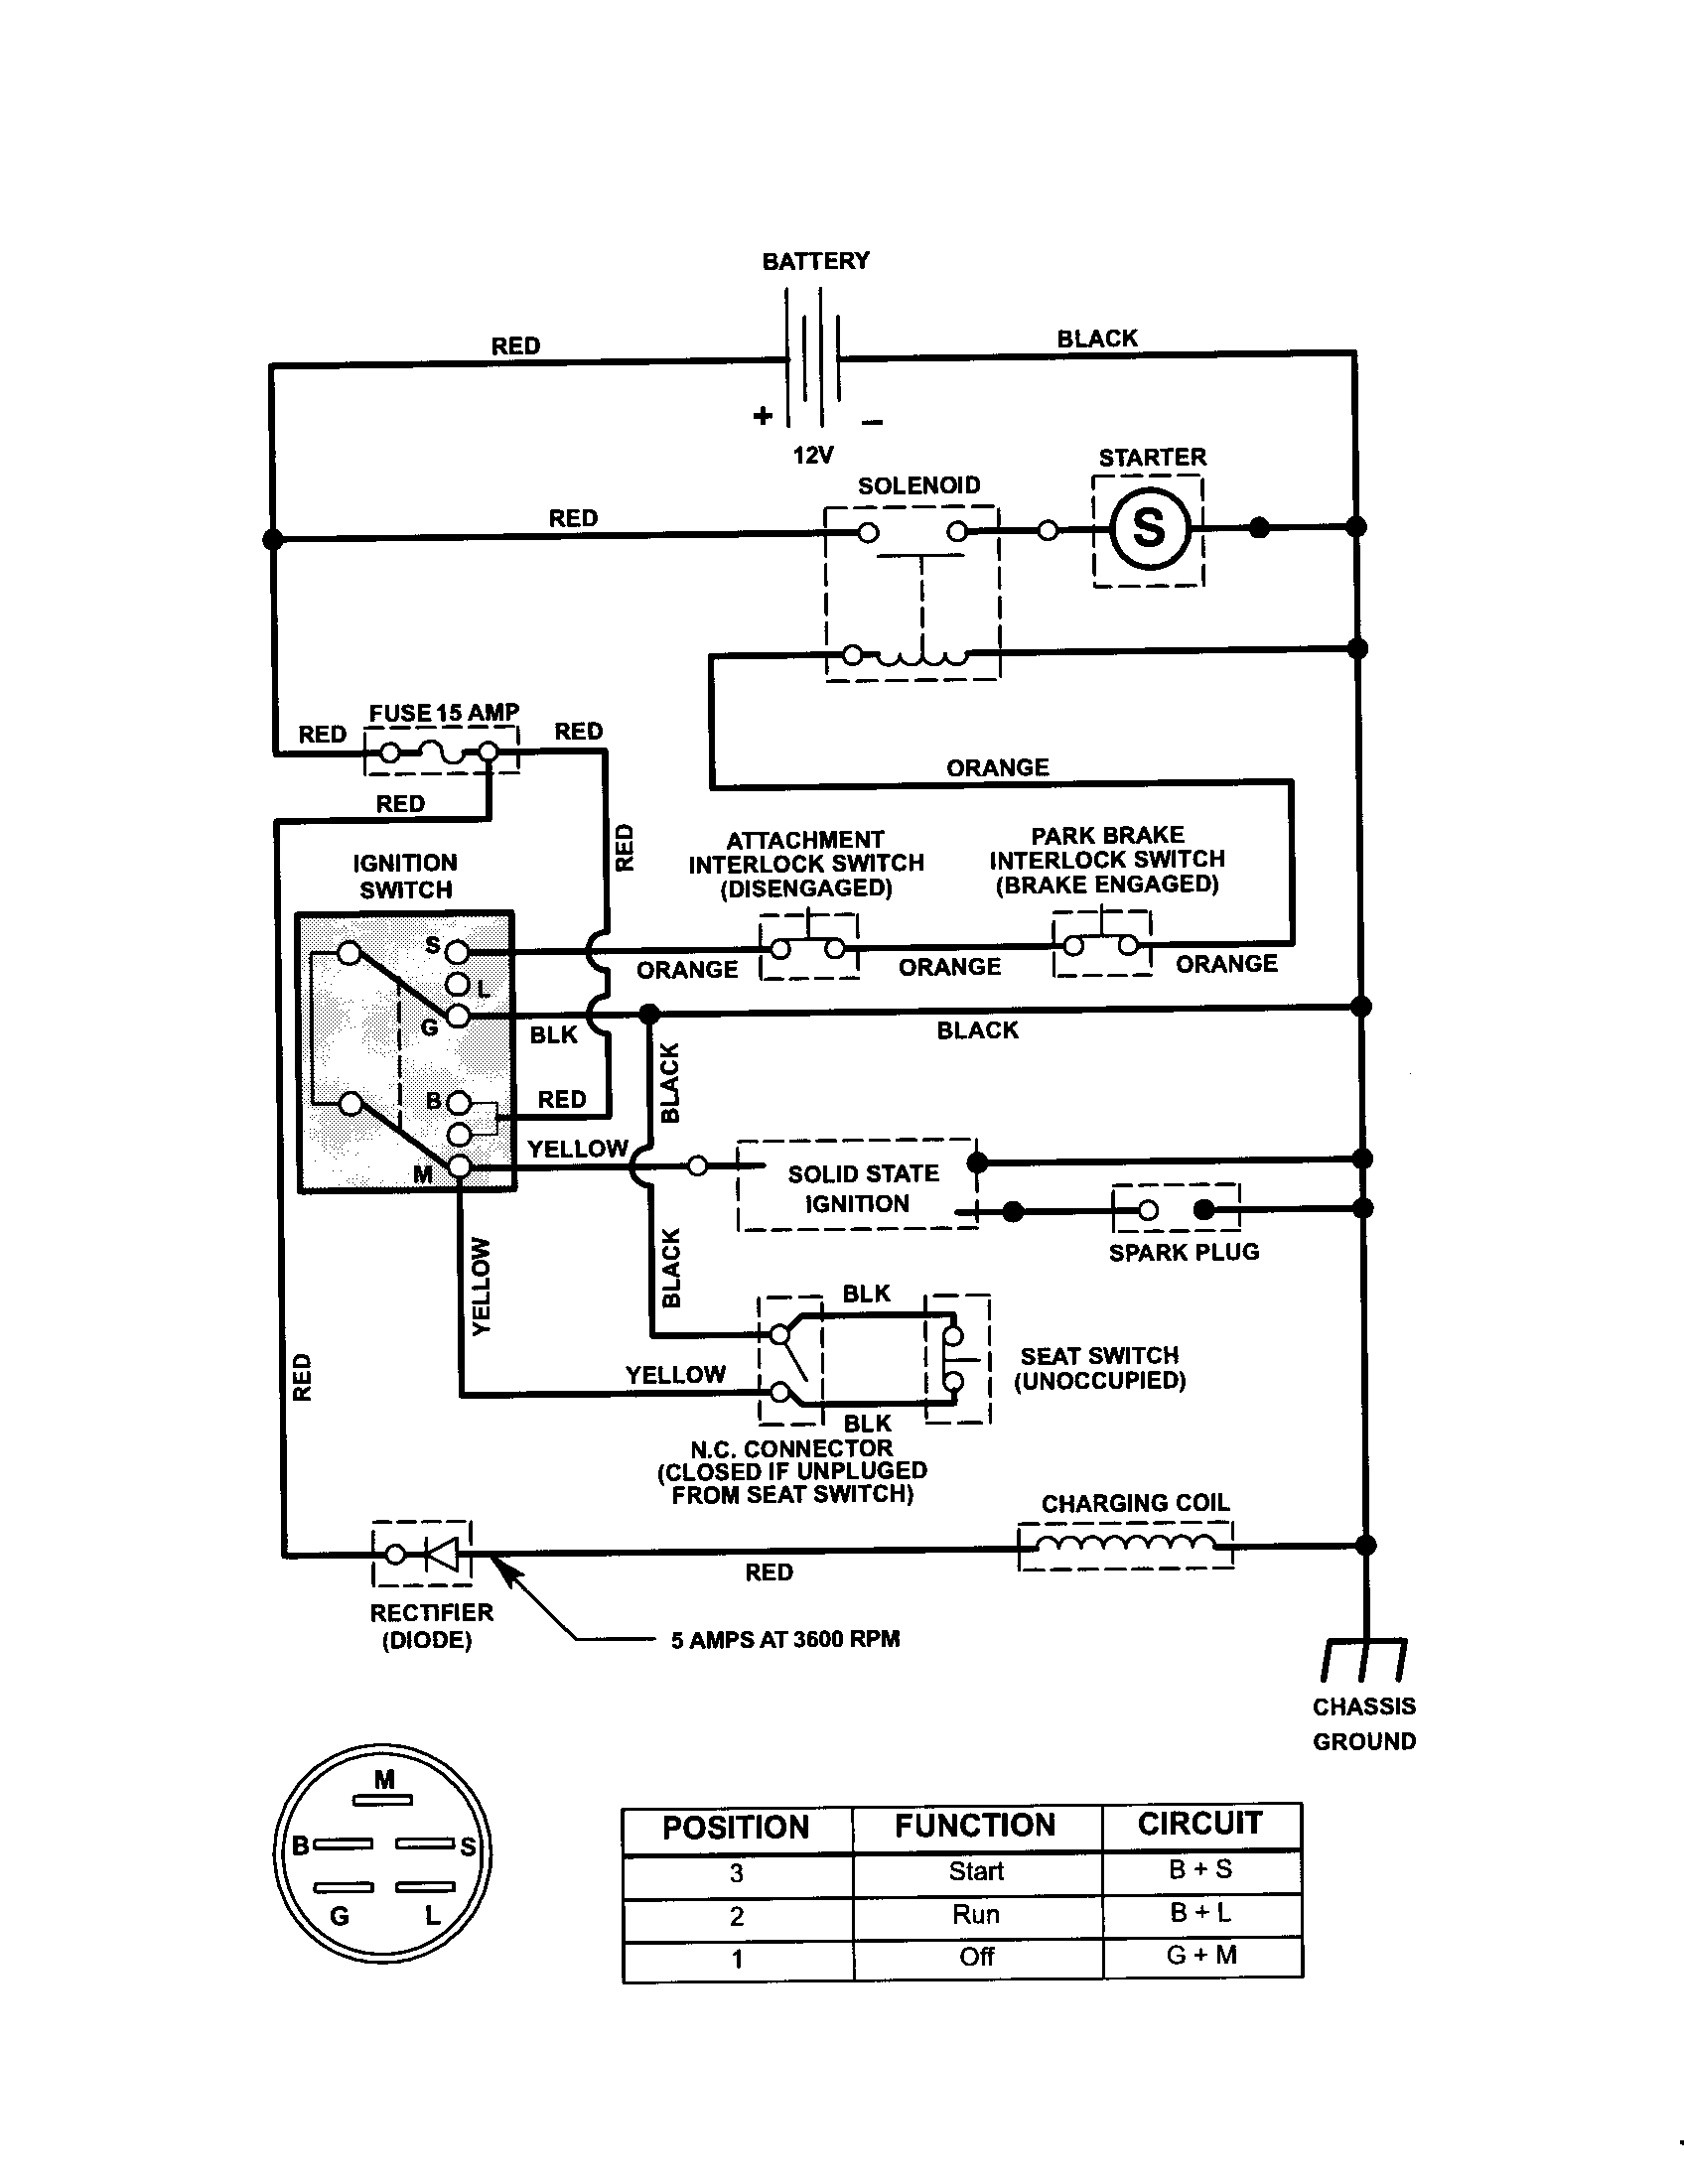 1b4fc64e2bcb7b381848942ff5c84dce craftsman riding mower electrical diagram pictures of craftsman craftsman lawn tractor wiring diagram at soozxer.org